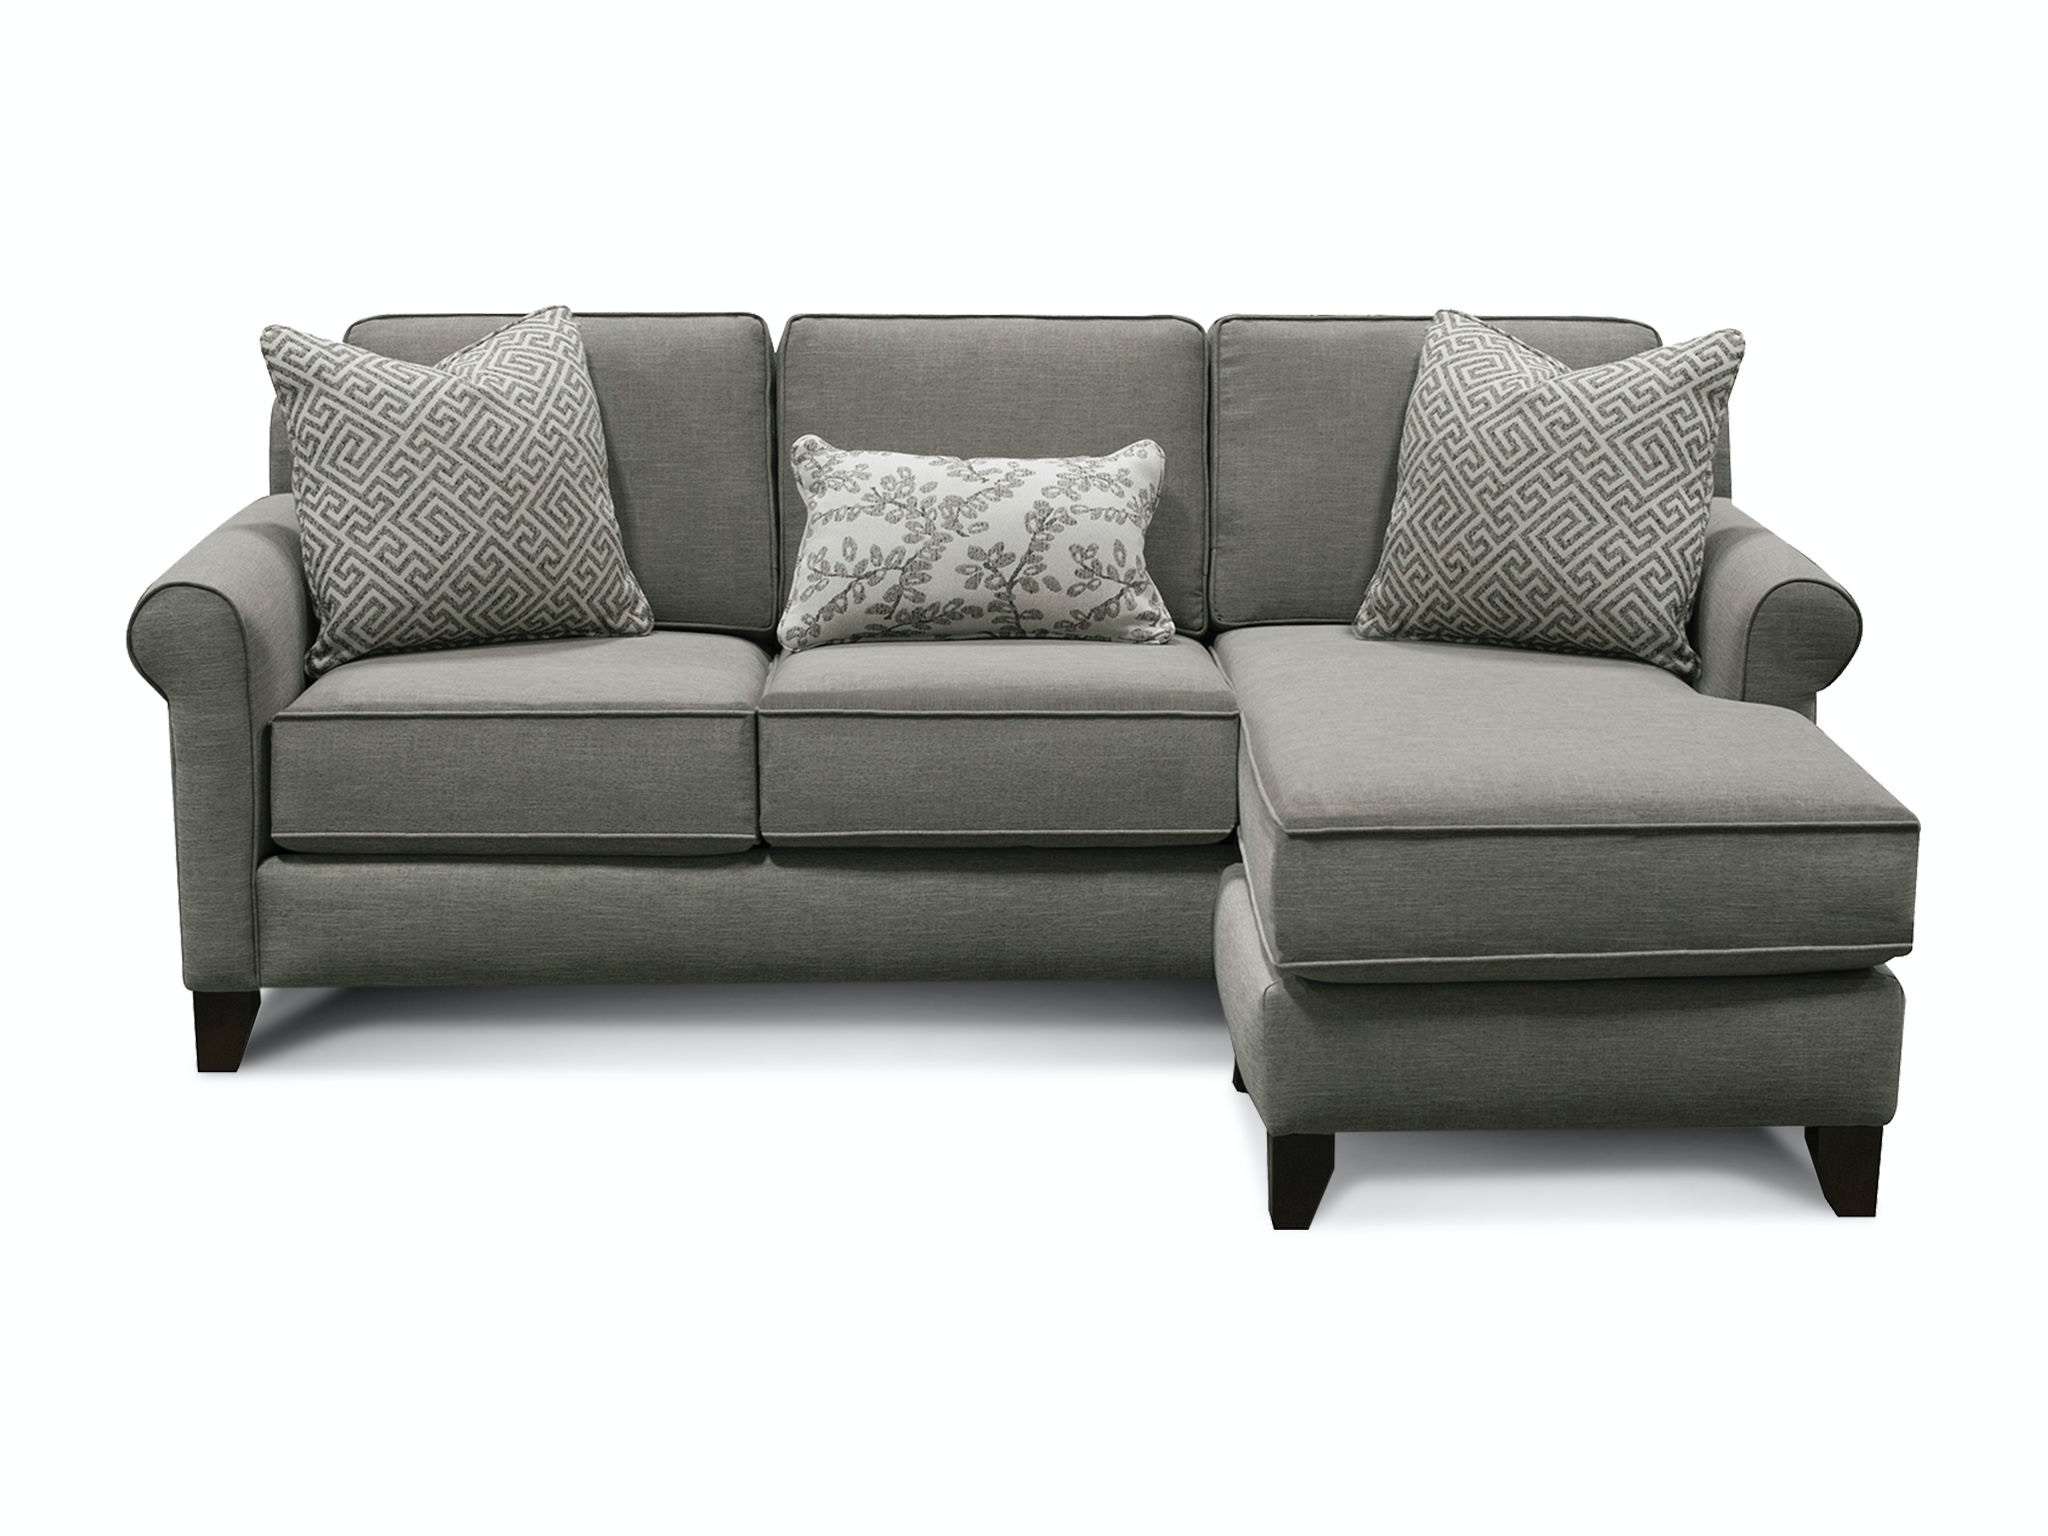 Charmant England Spencer Sofa With Chaise 7M00 56